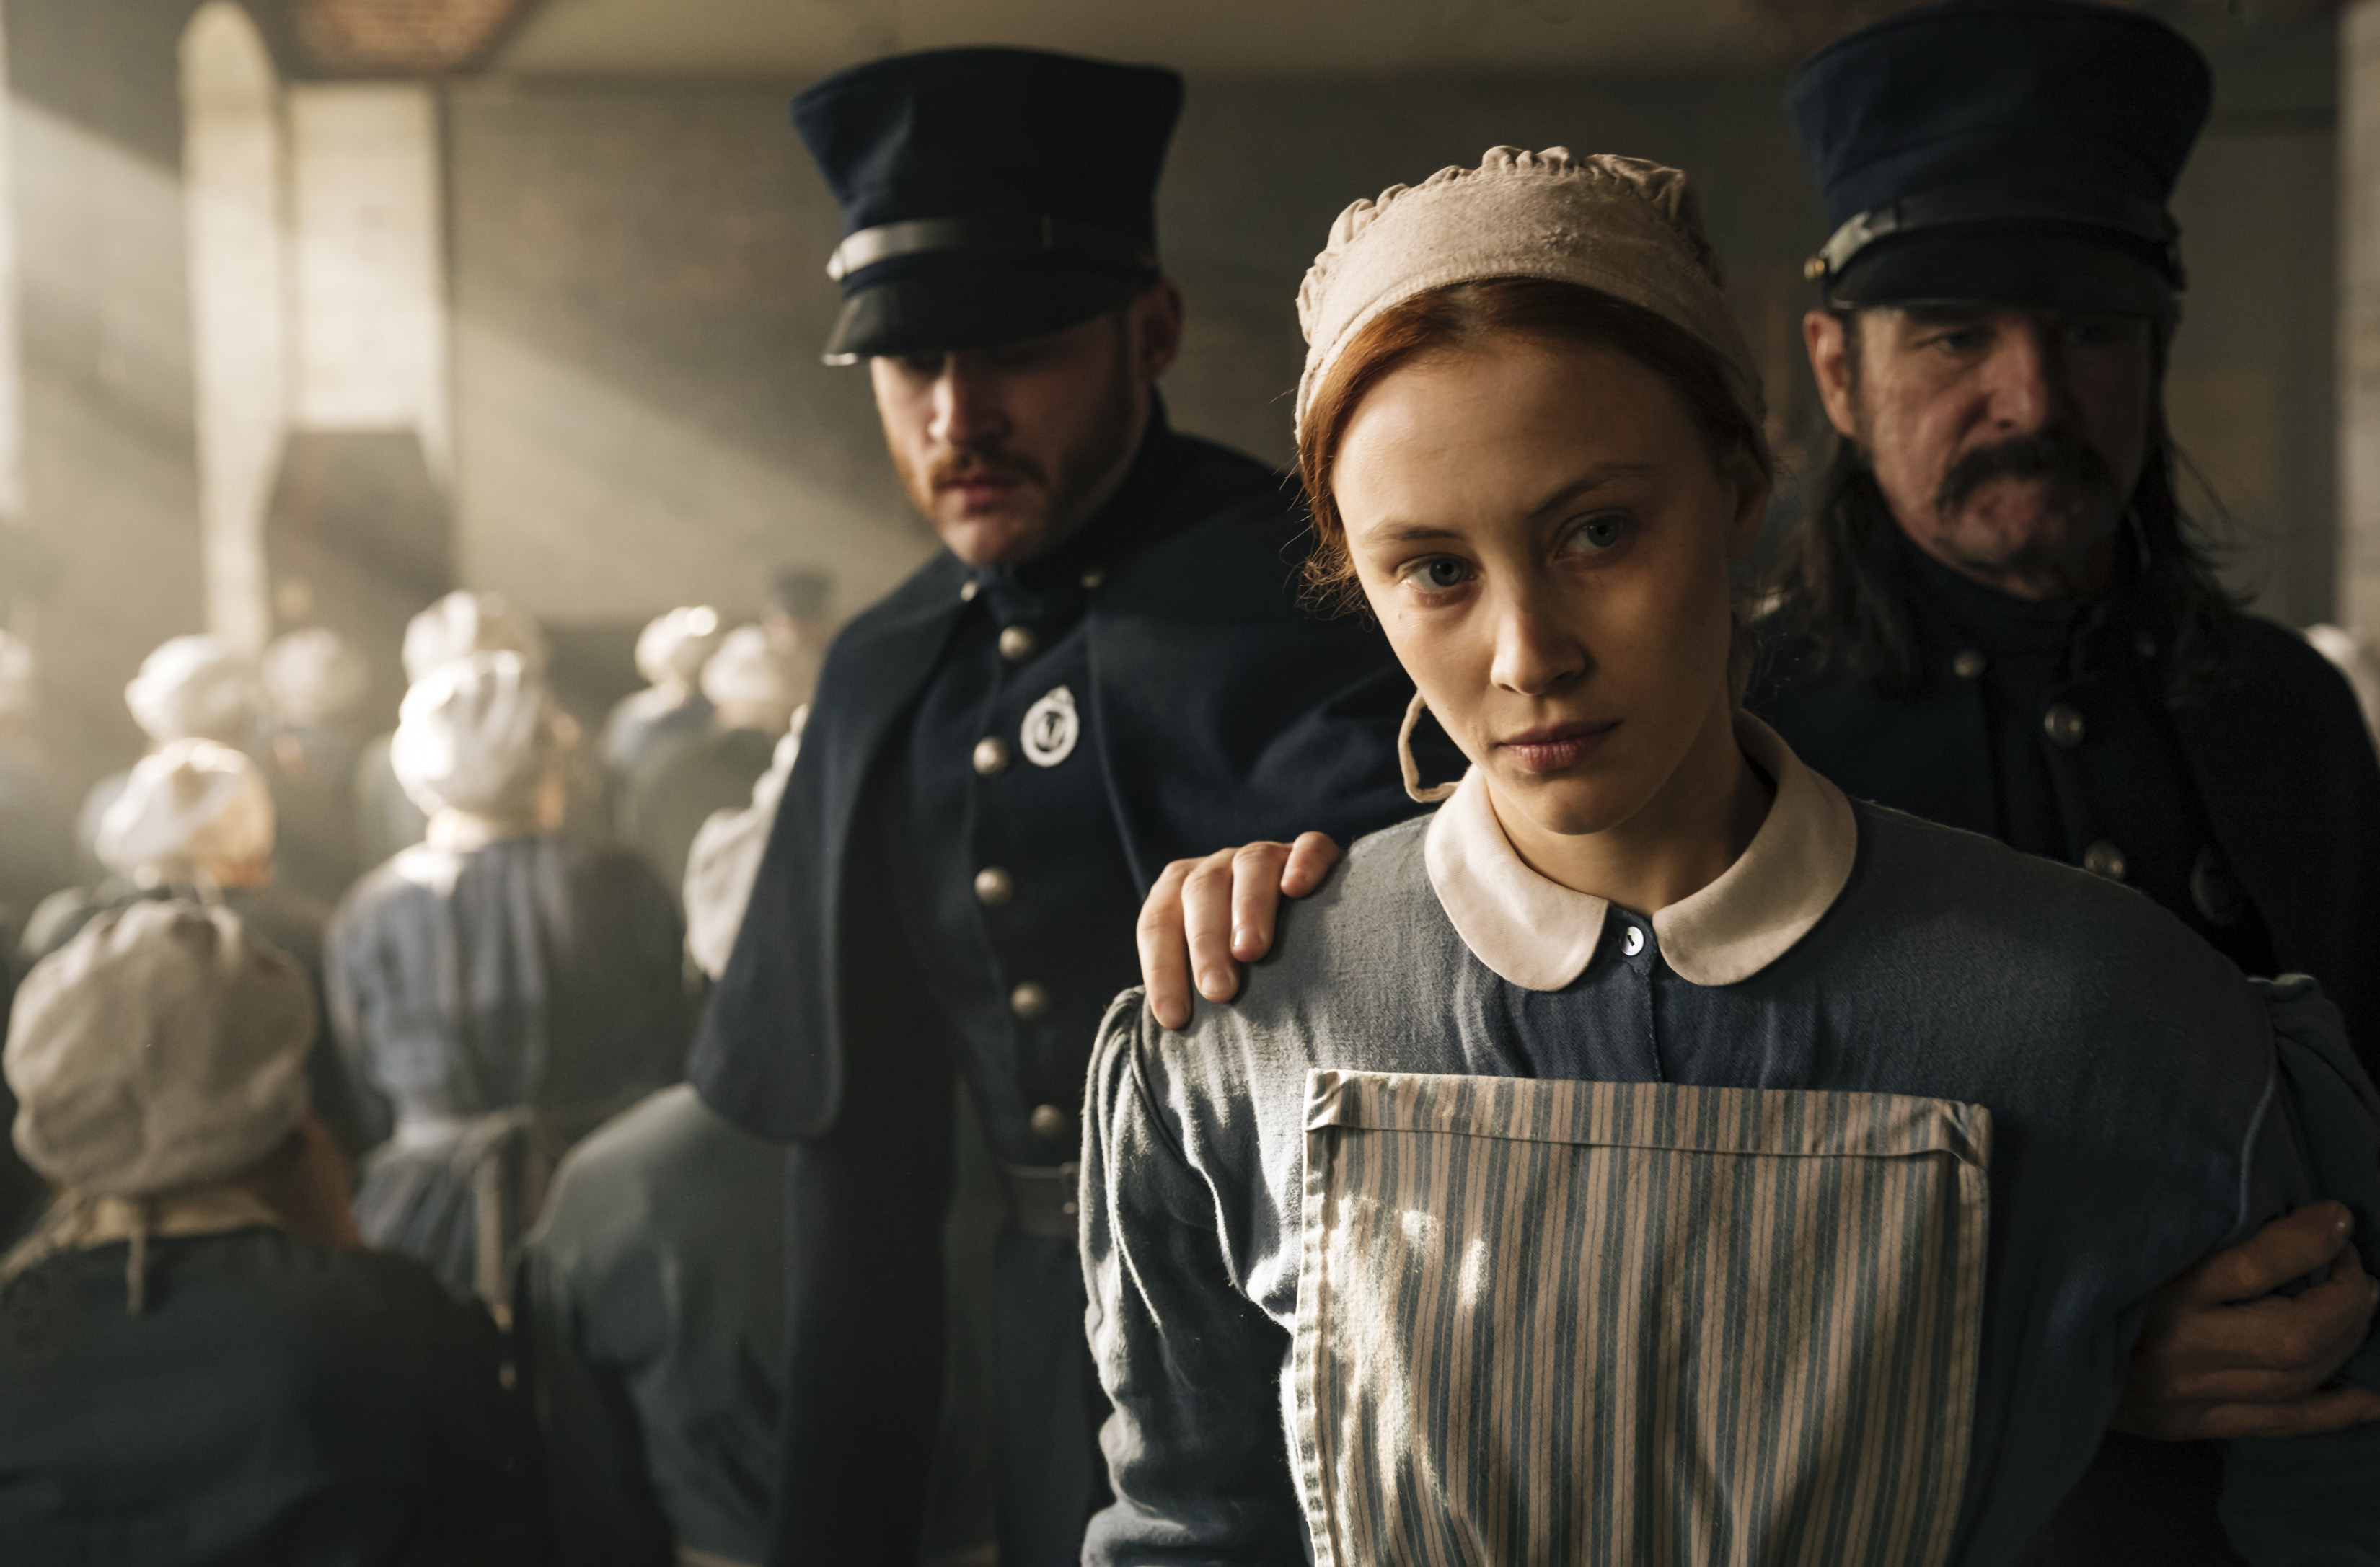 Alias Grace — Even More Relevant Than the Handmaid's Tale